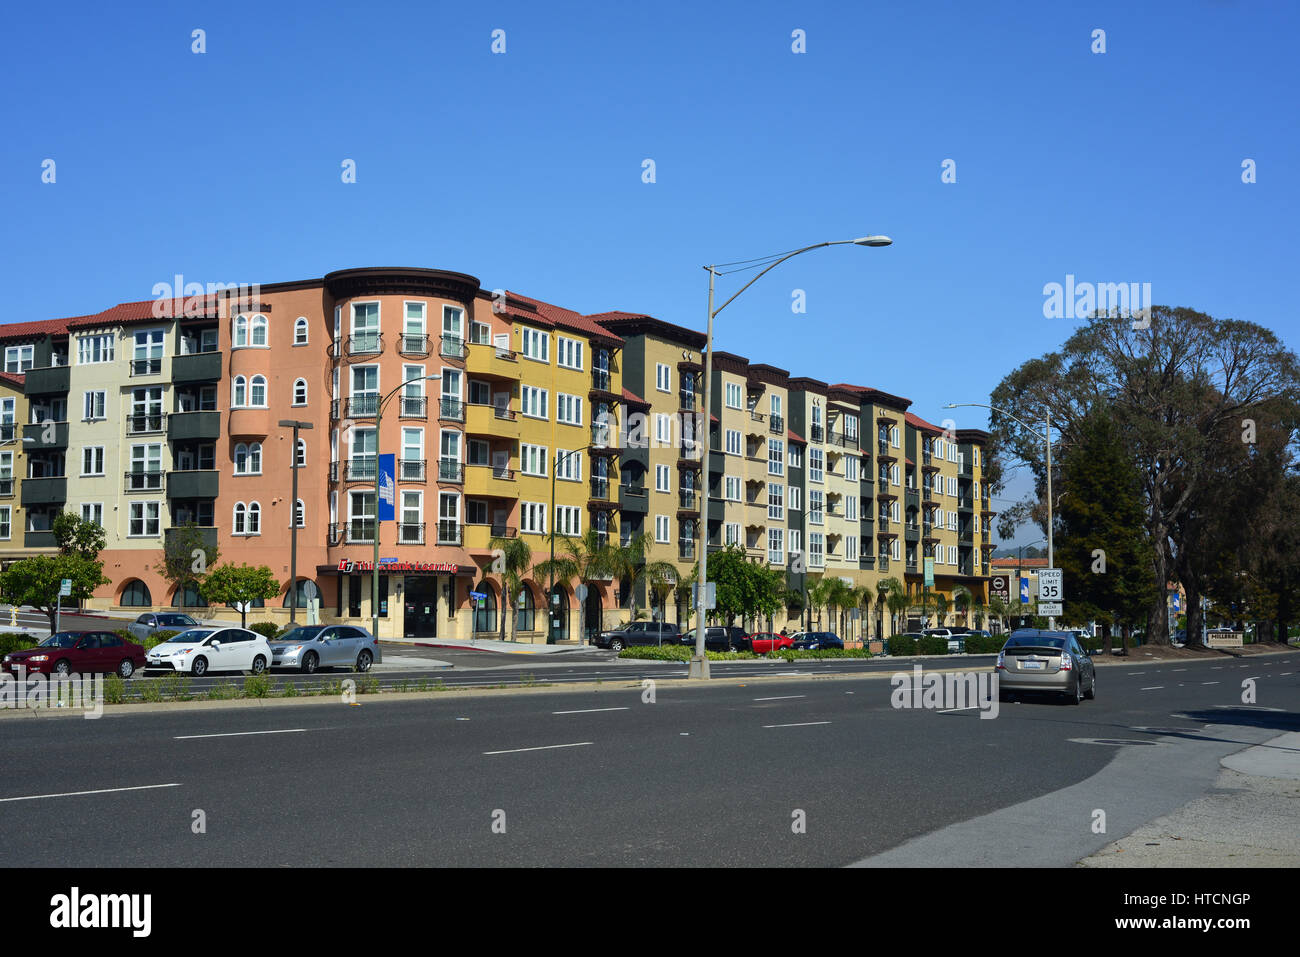 Apartments near Millbrae BART station - Stock Image